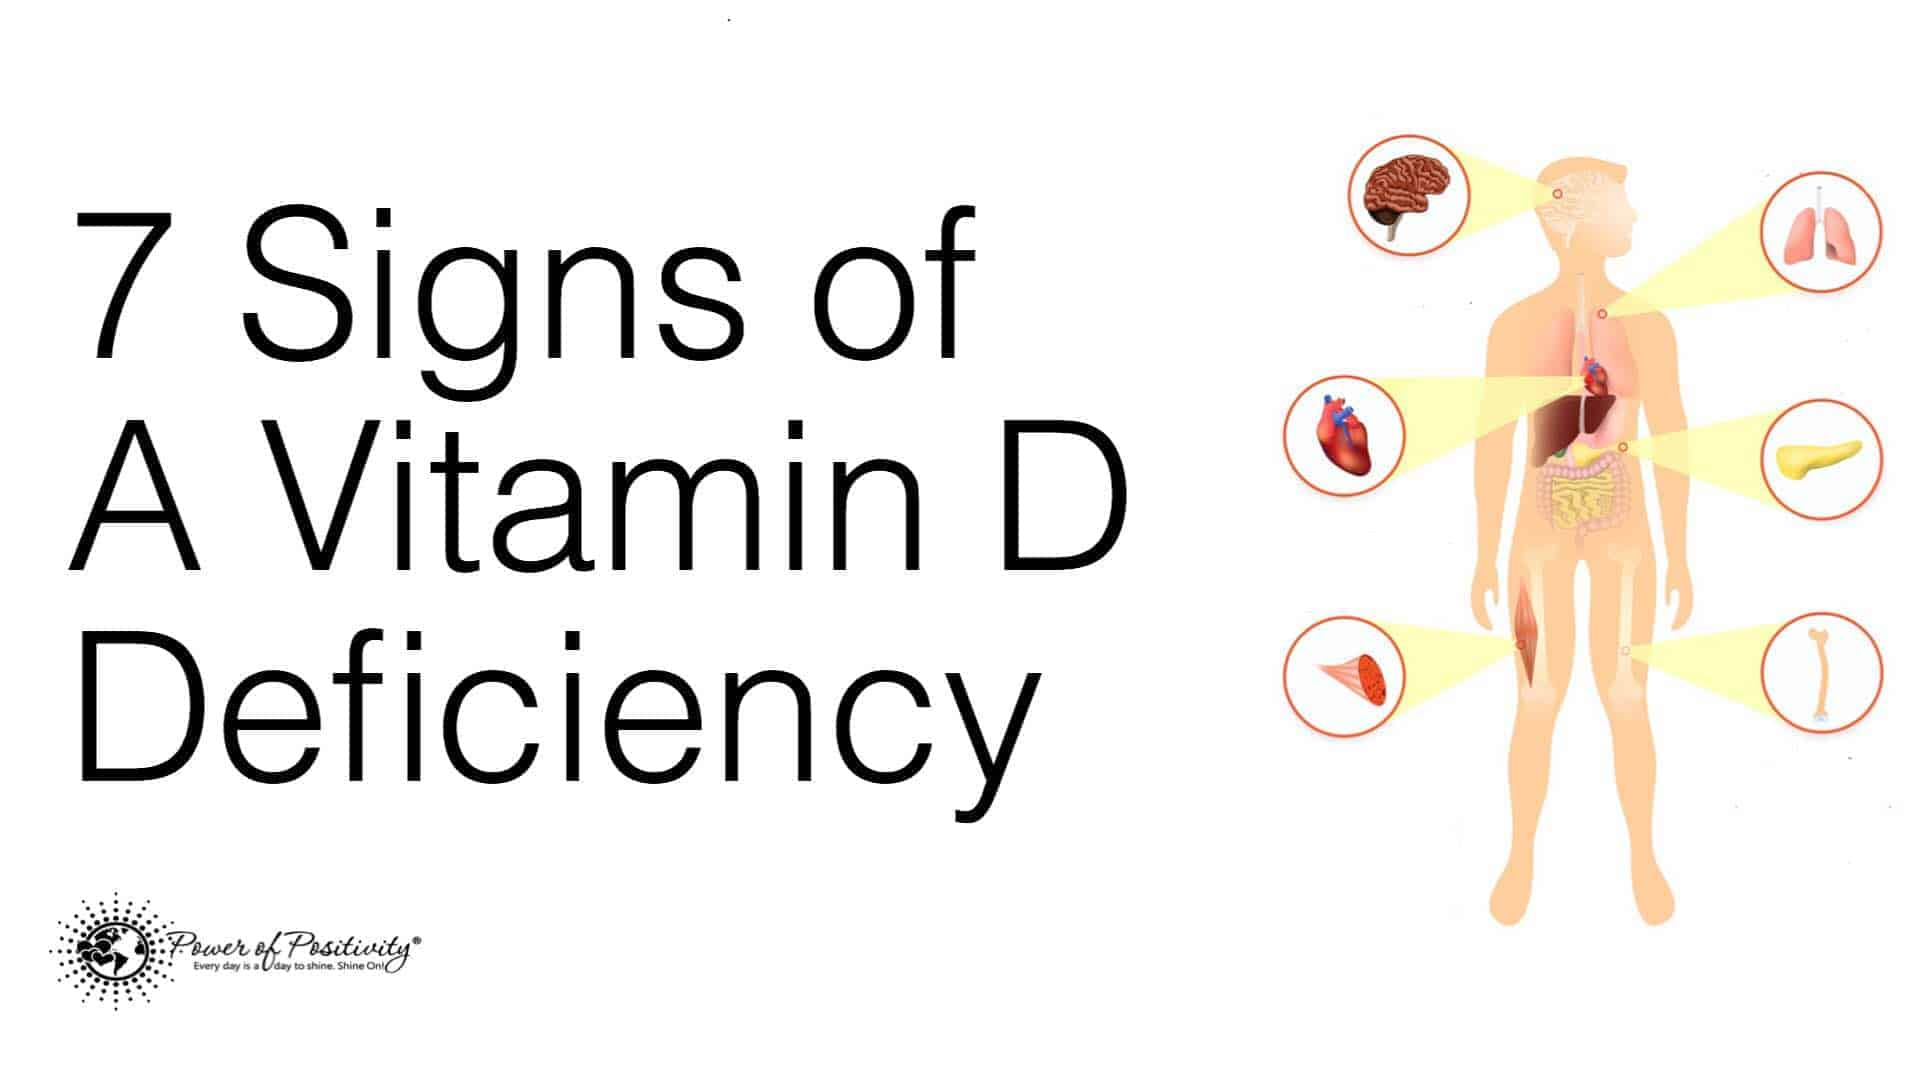 Do You Have a Vitamin D Deficiency Answer These 5 Questions to Find Out